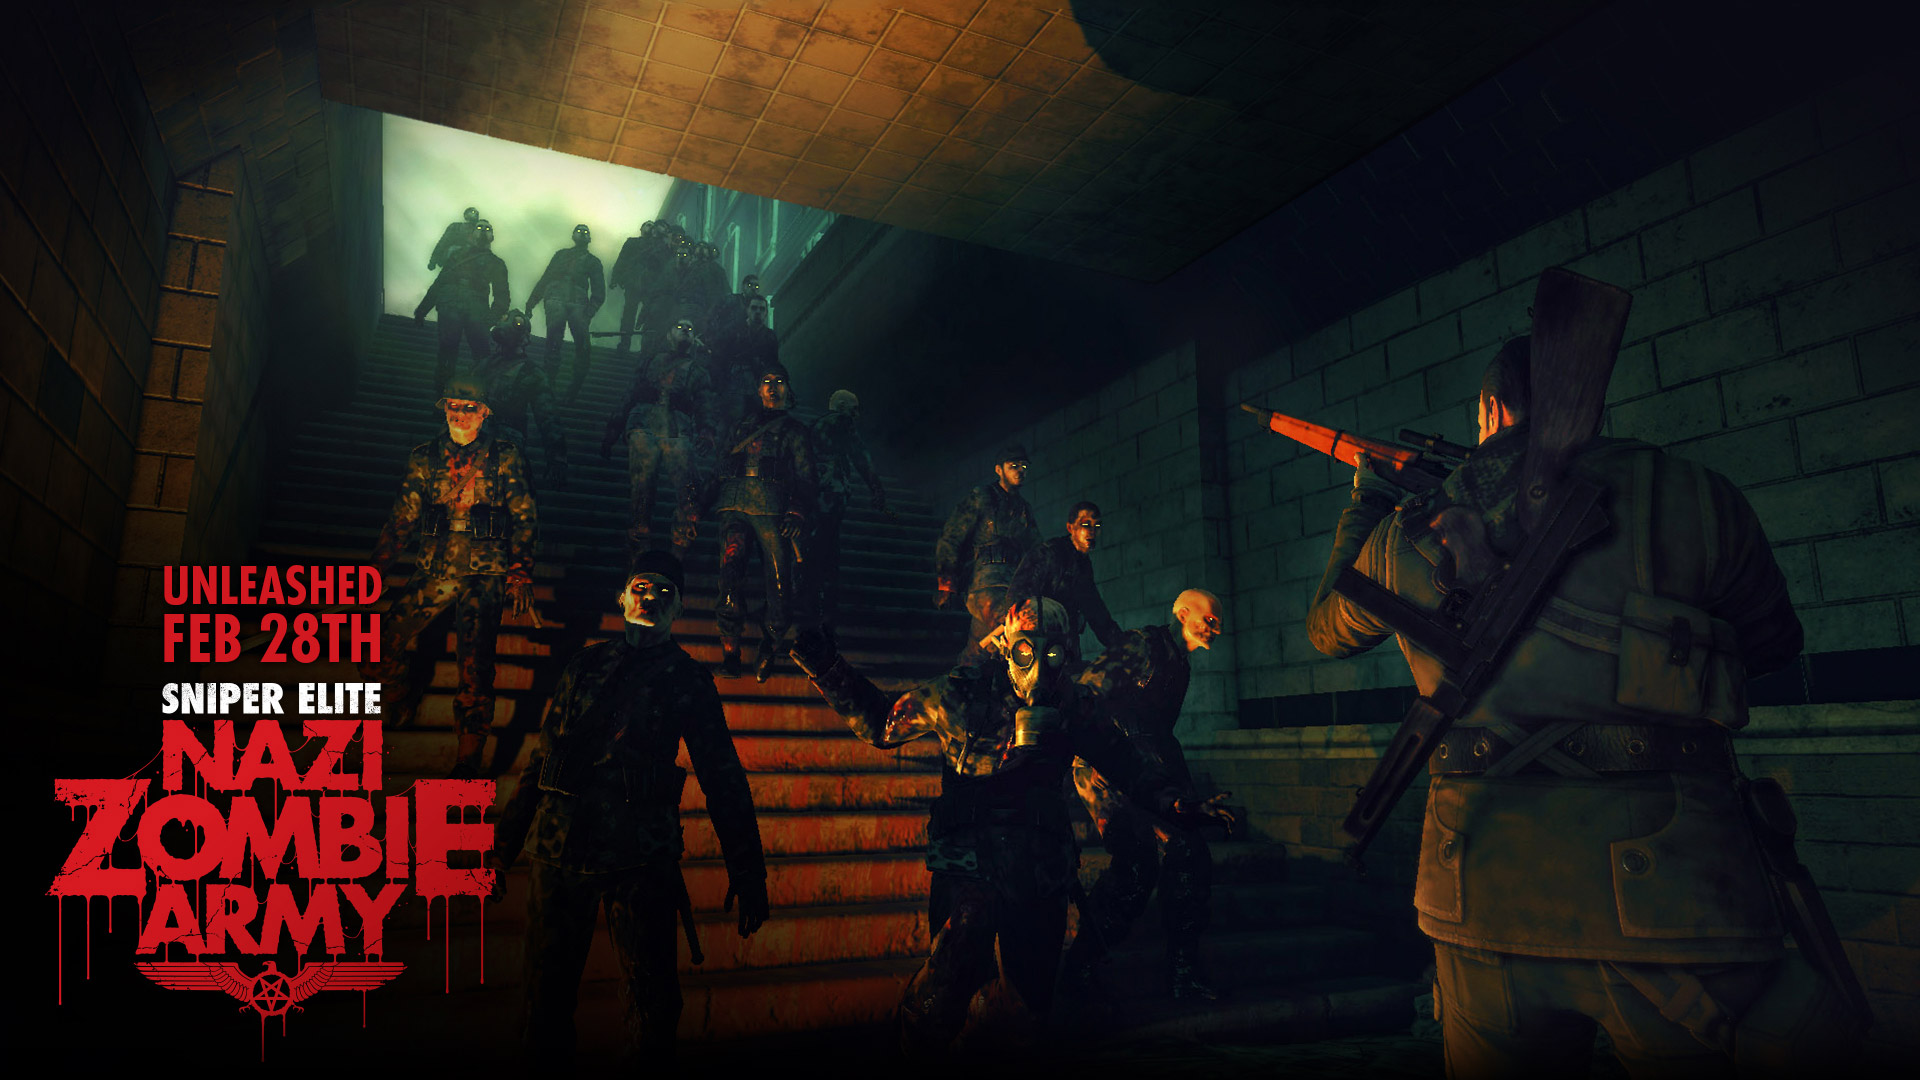 Free Sniper Elite: Nazi Zombie Army Wallpaper in 1920x1080